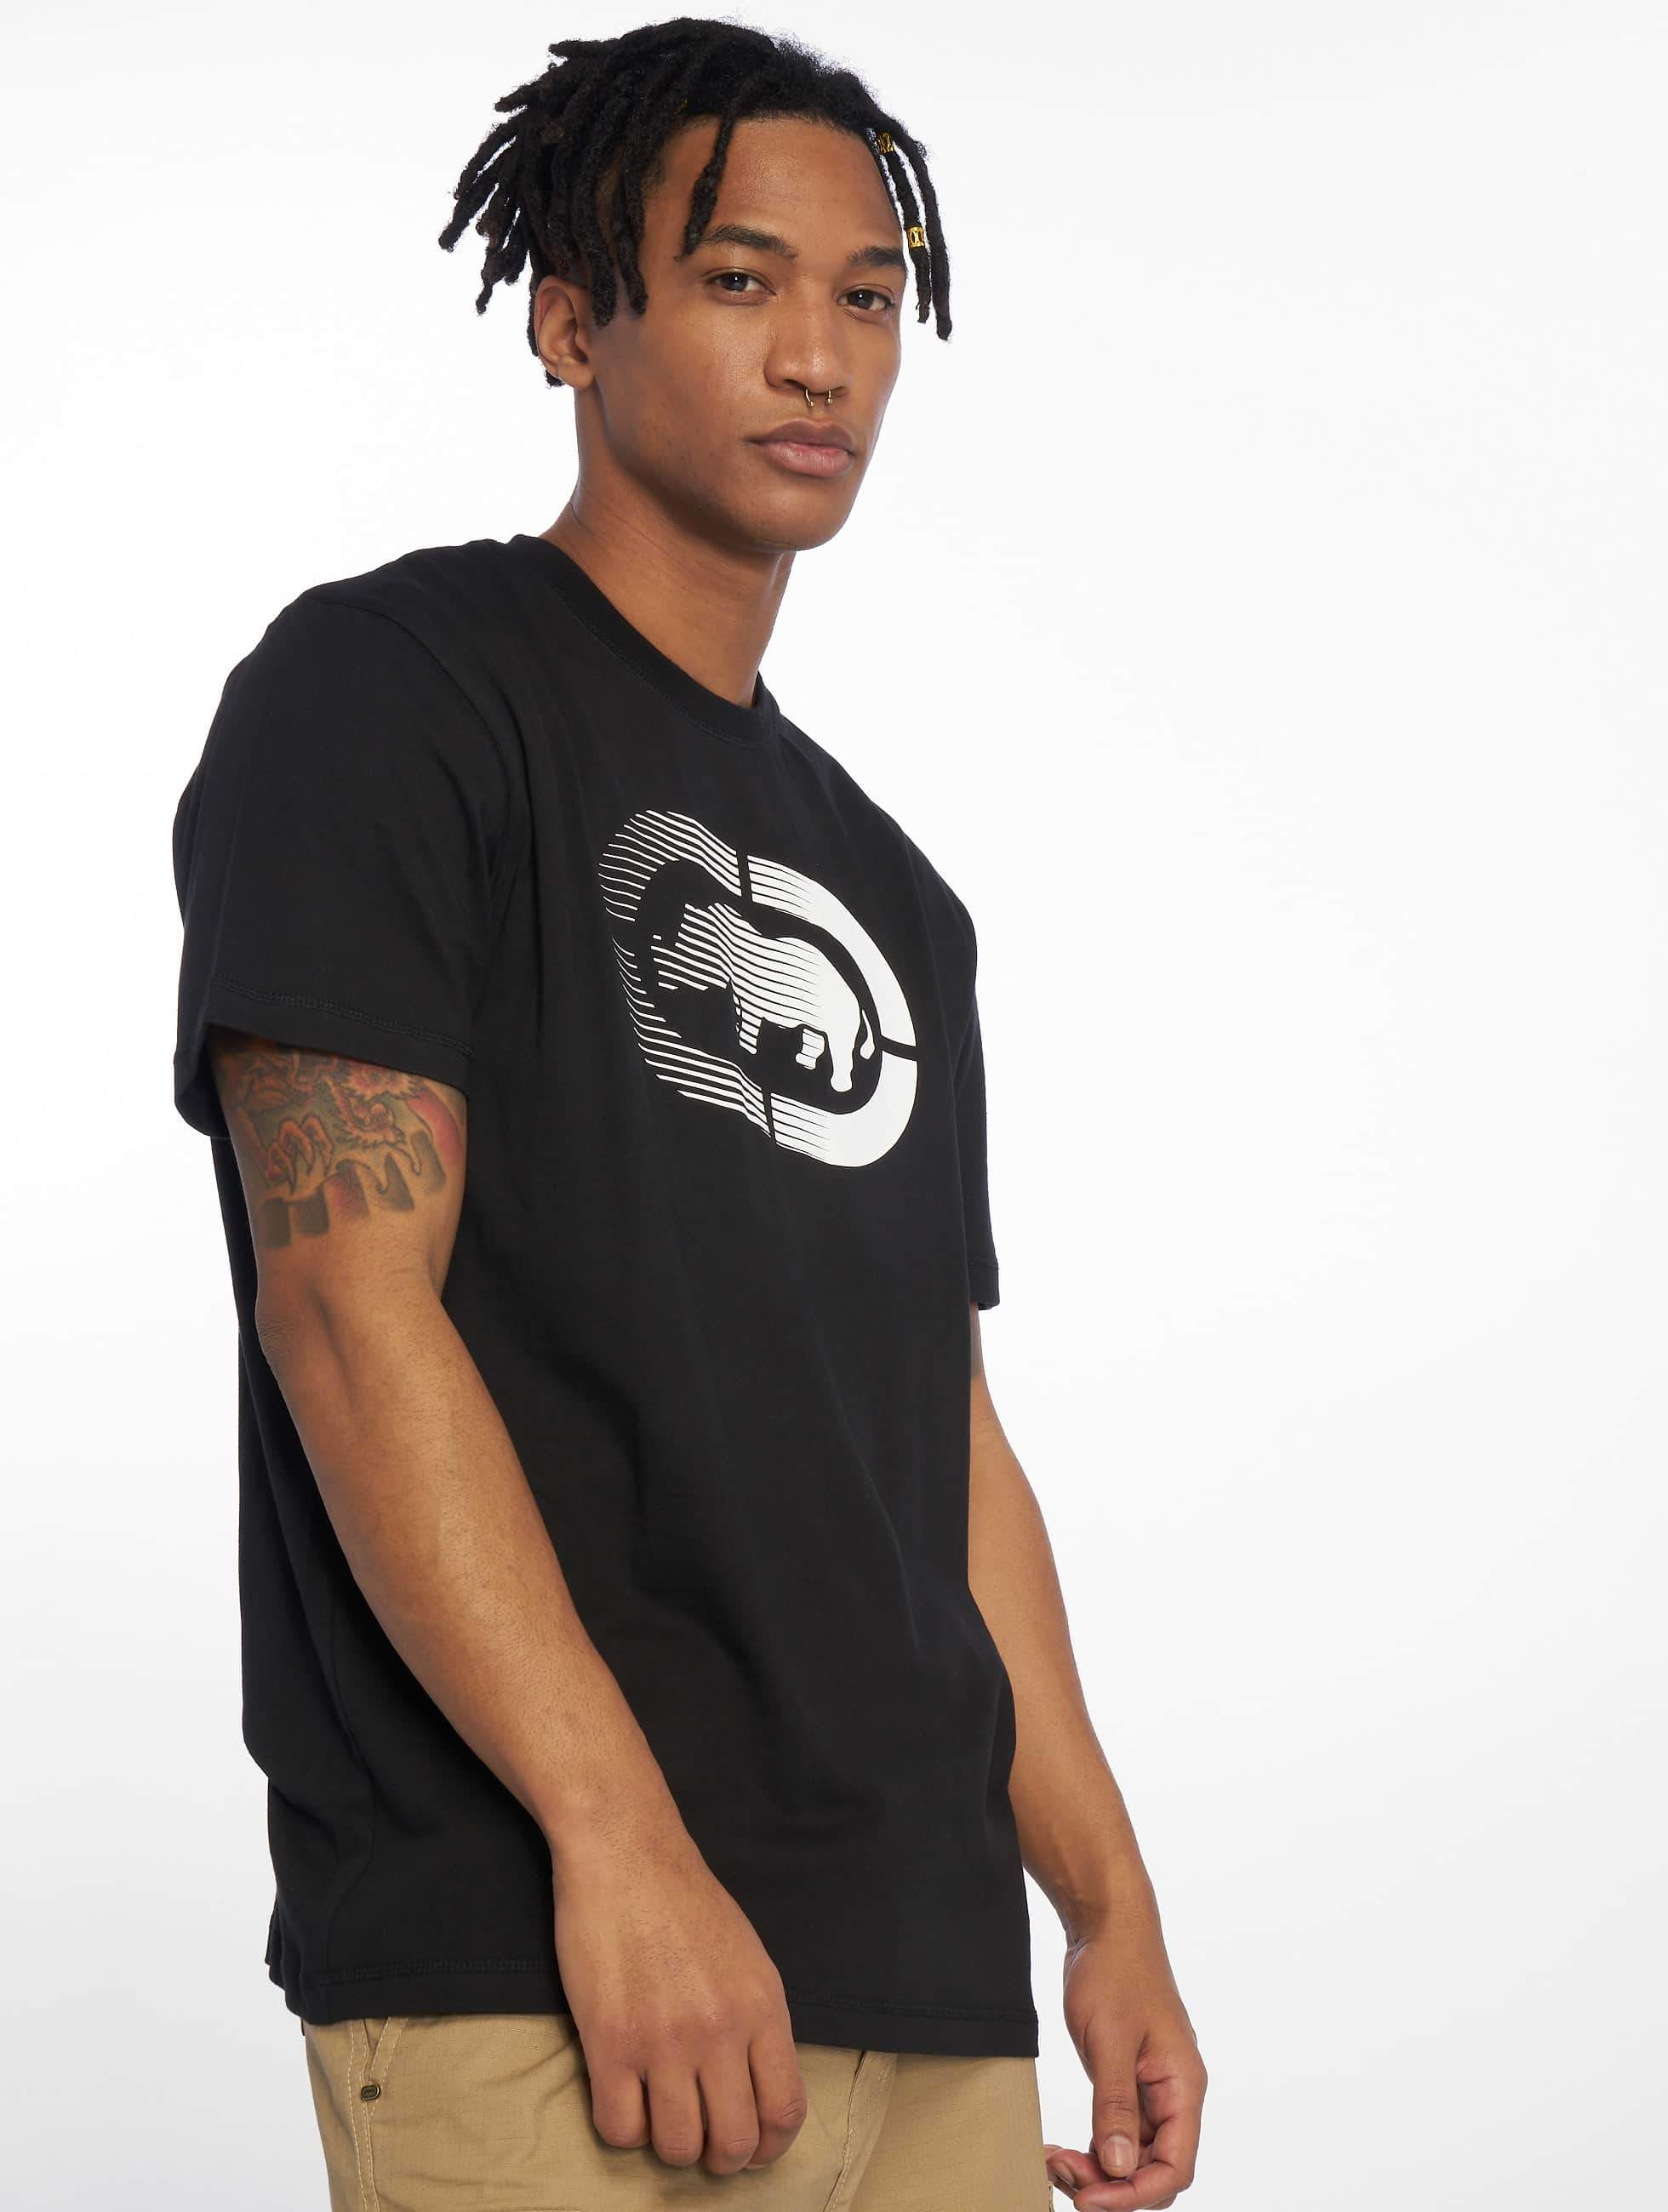 Ecko Unltd. / T-Shirt 5050 in black M